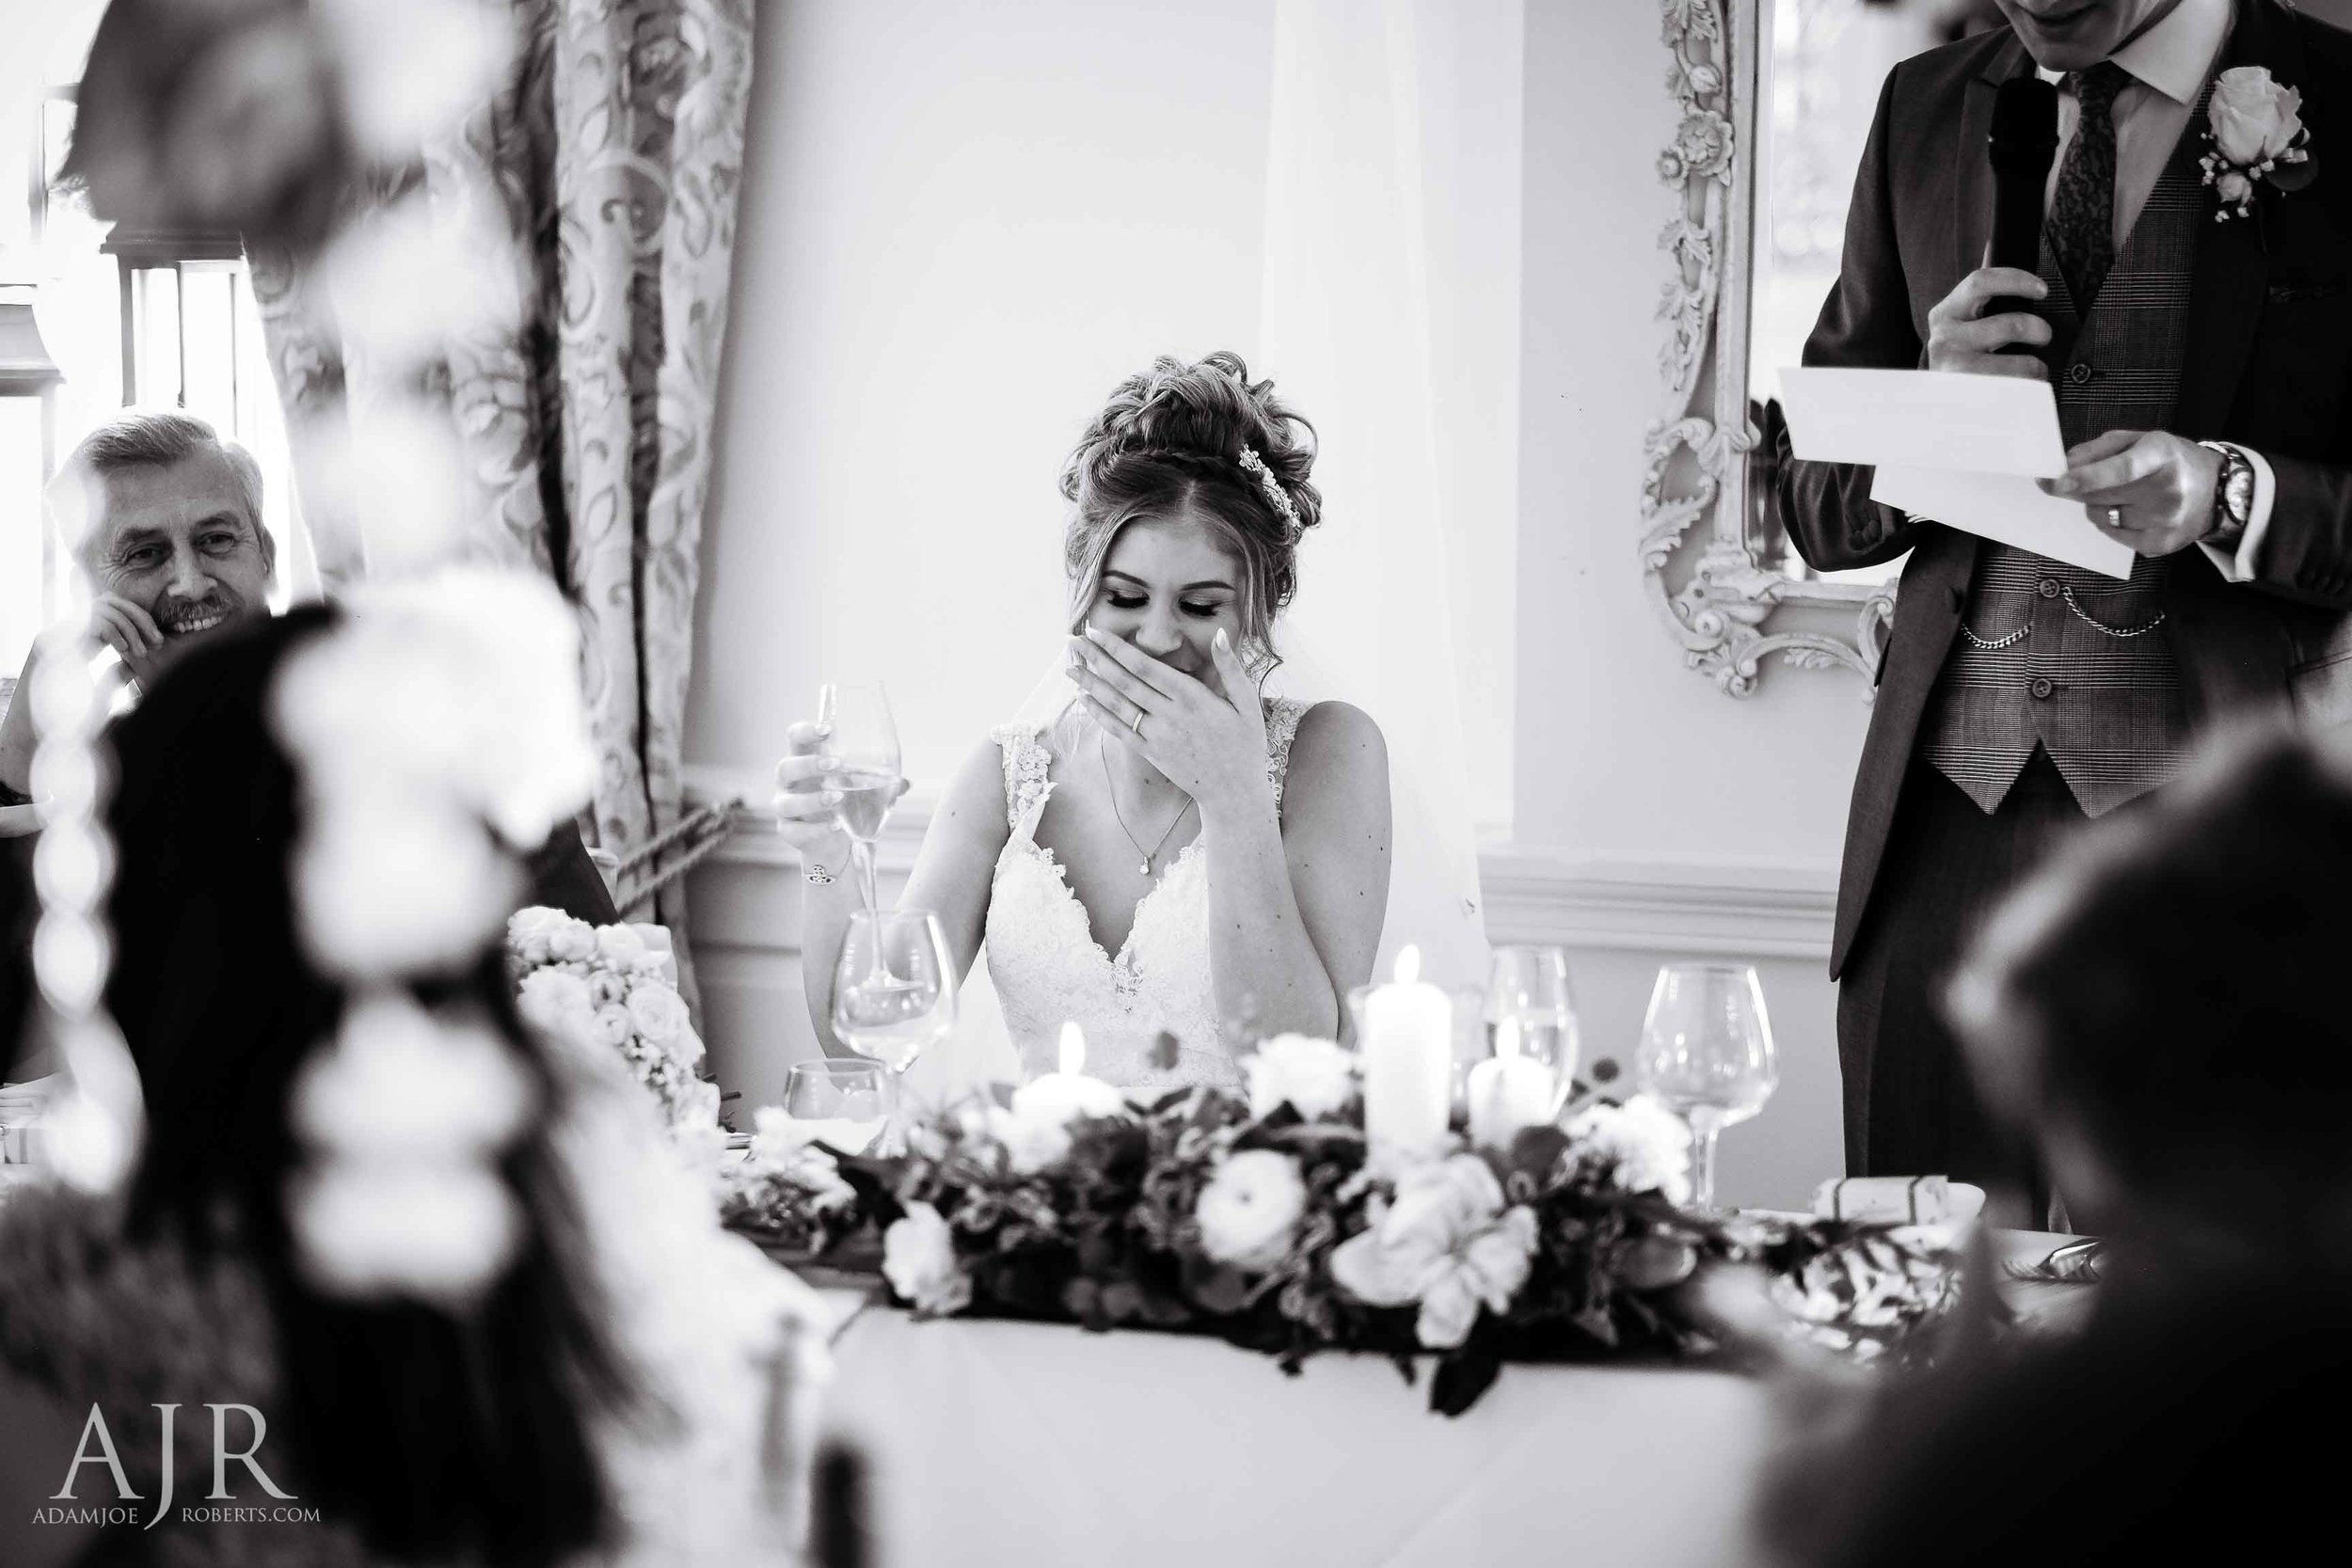 Eaves Hall Clitheroe north west documentry wedding photographer  (76 of 96).jpg